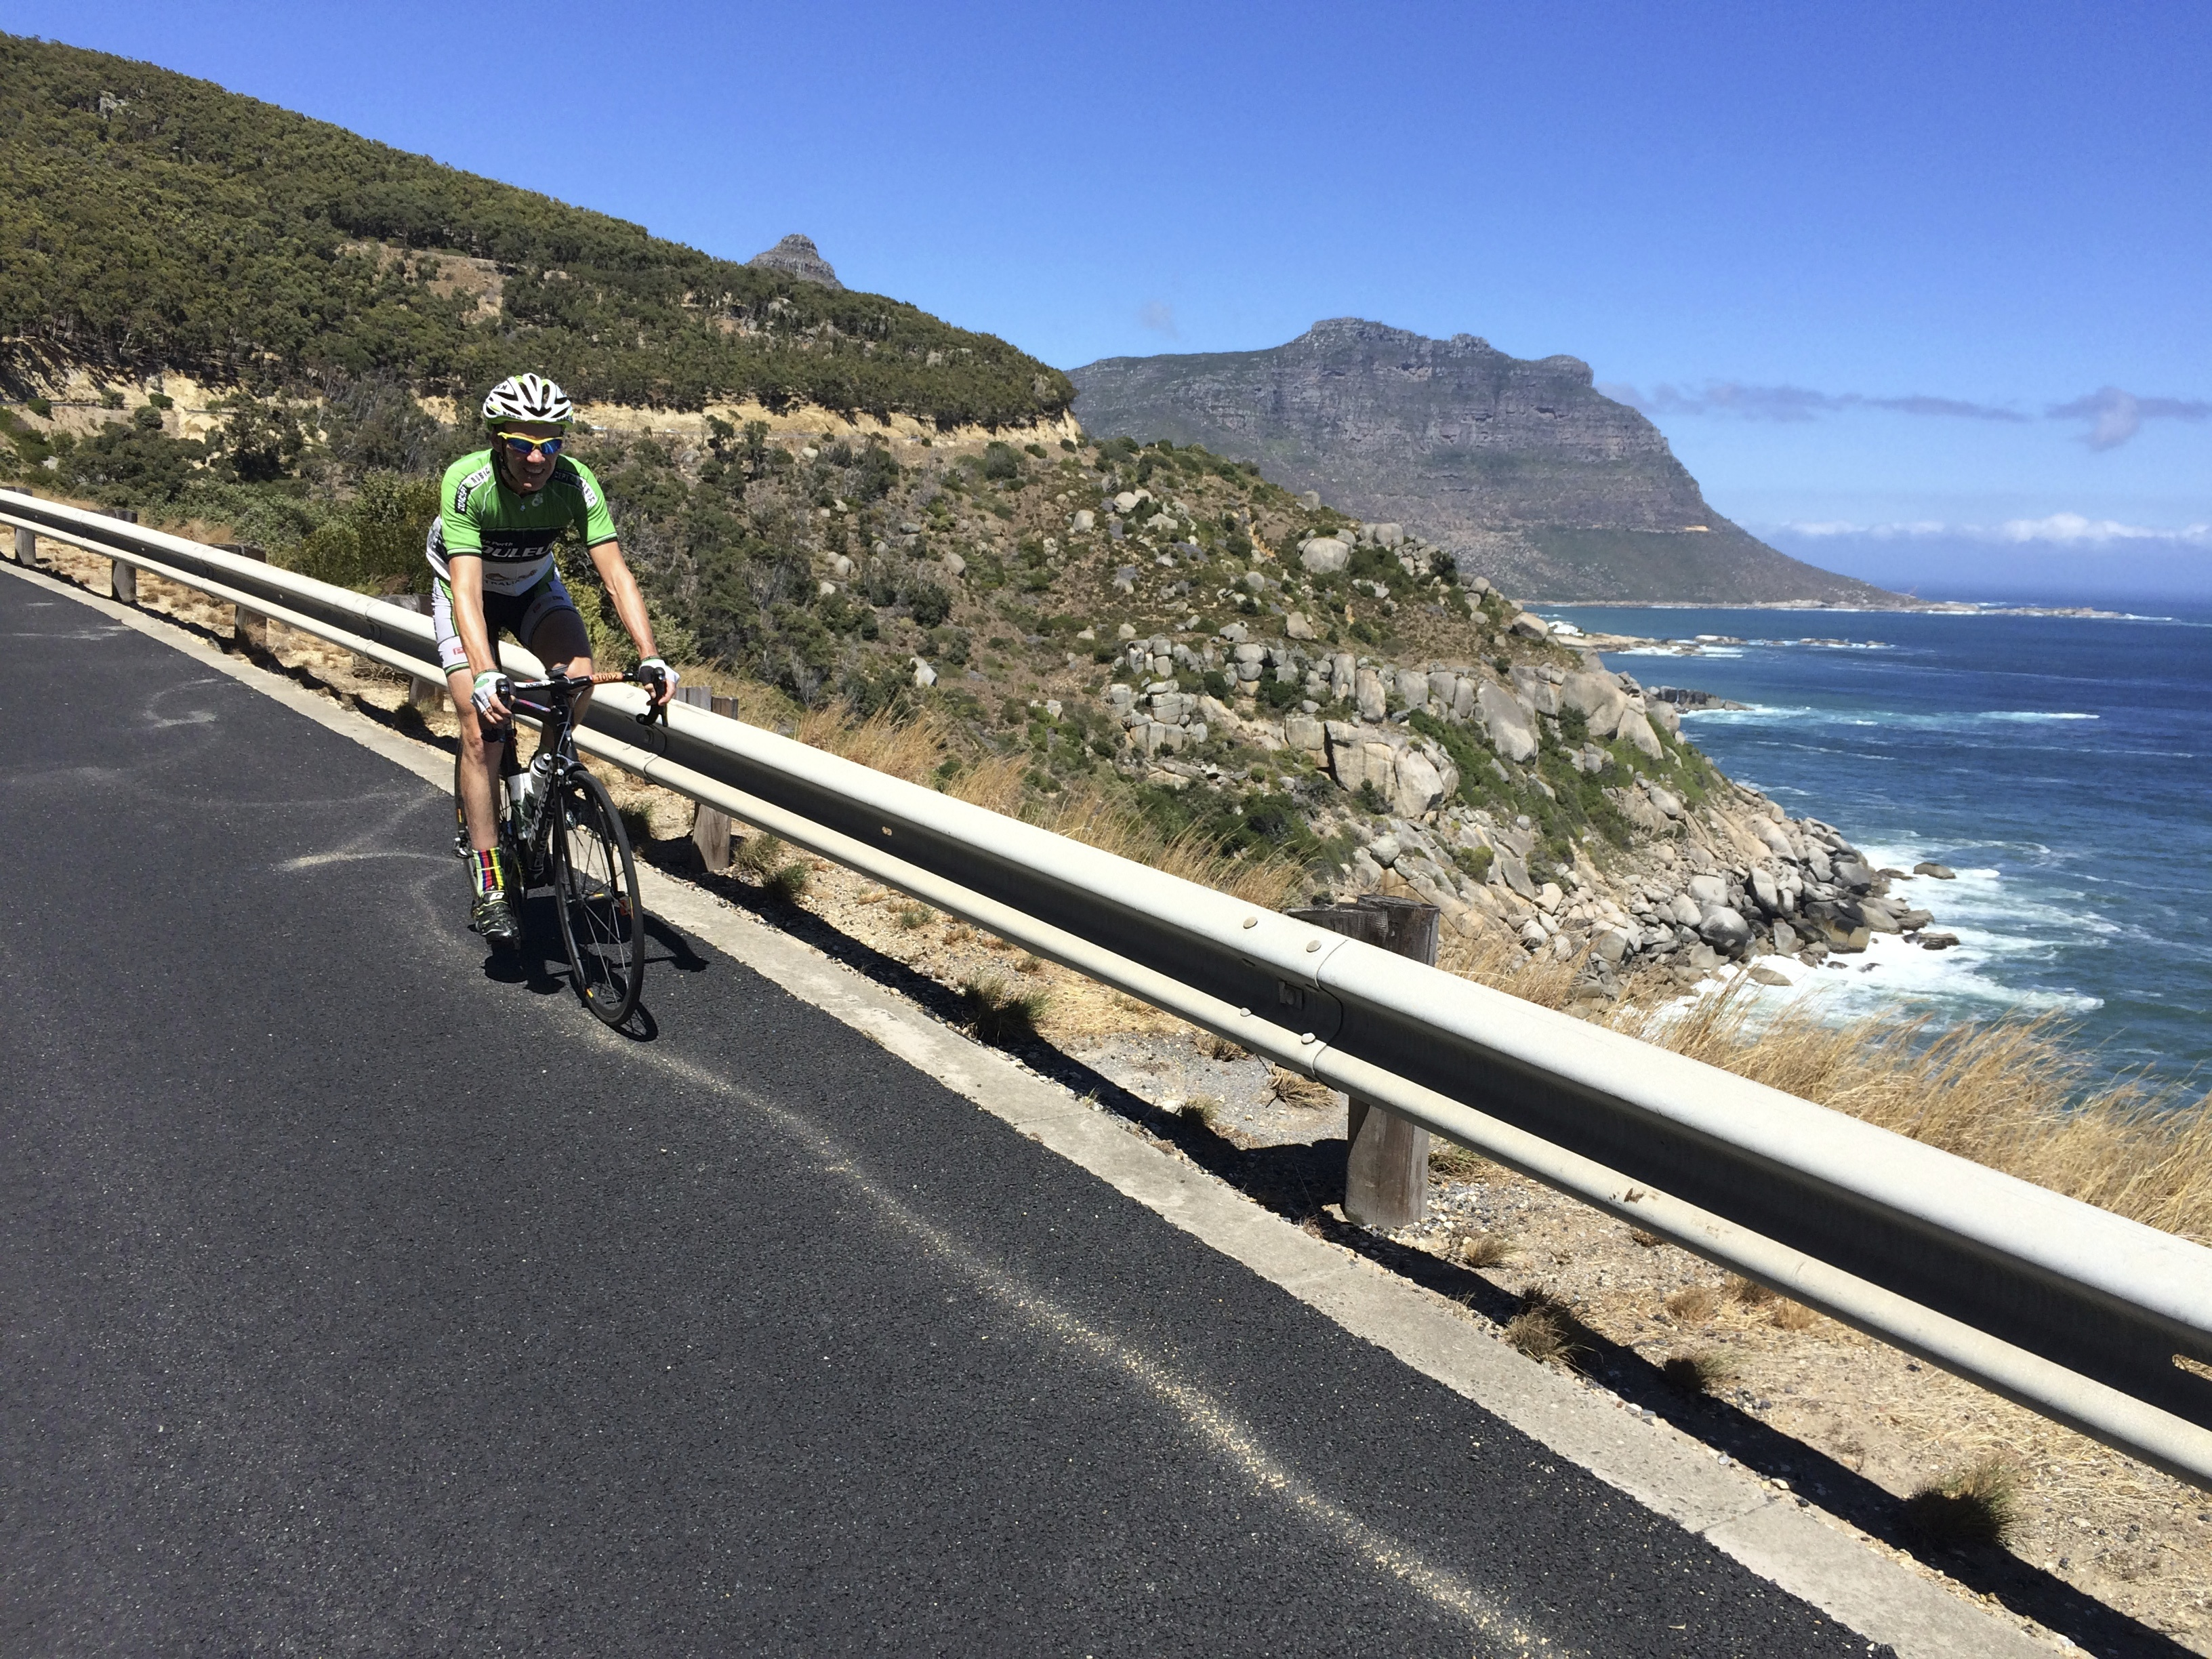 Haut Bay to Camps Bay, Saturday 8 March 2015 - picture courtesy of Mark de Castro